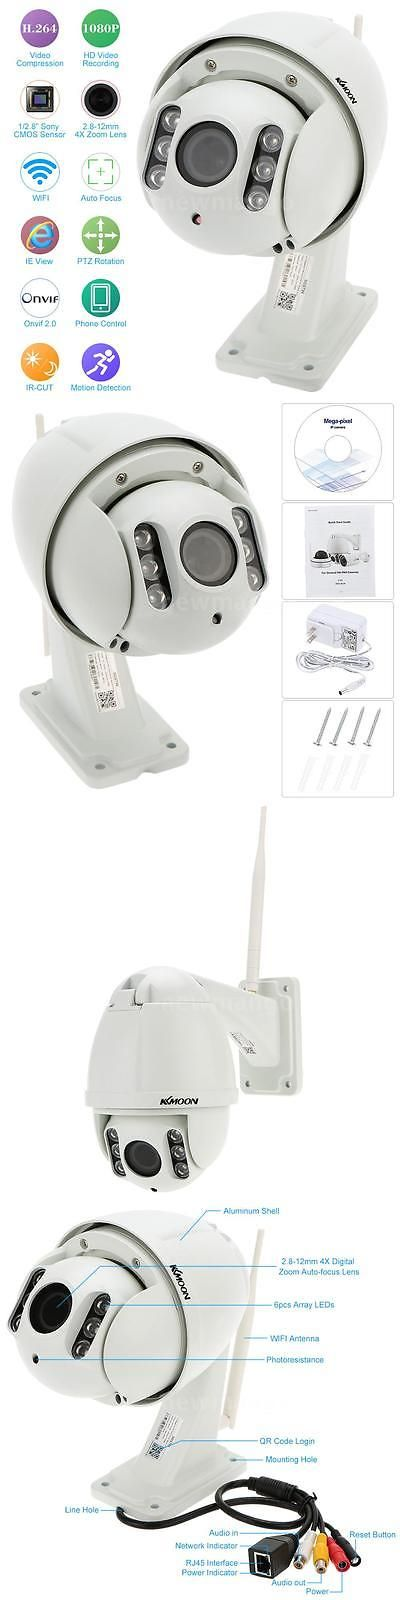 Security Cameras: Kkmoon Wireless Hd 1080P Ptz Outdoor Ir Cut Cctv Camera Wifi Ip Camera H.264 Us -> BUY IT NOW ONLY: $116.47 on eBay!